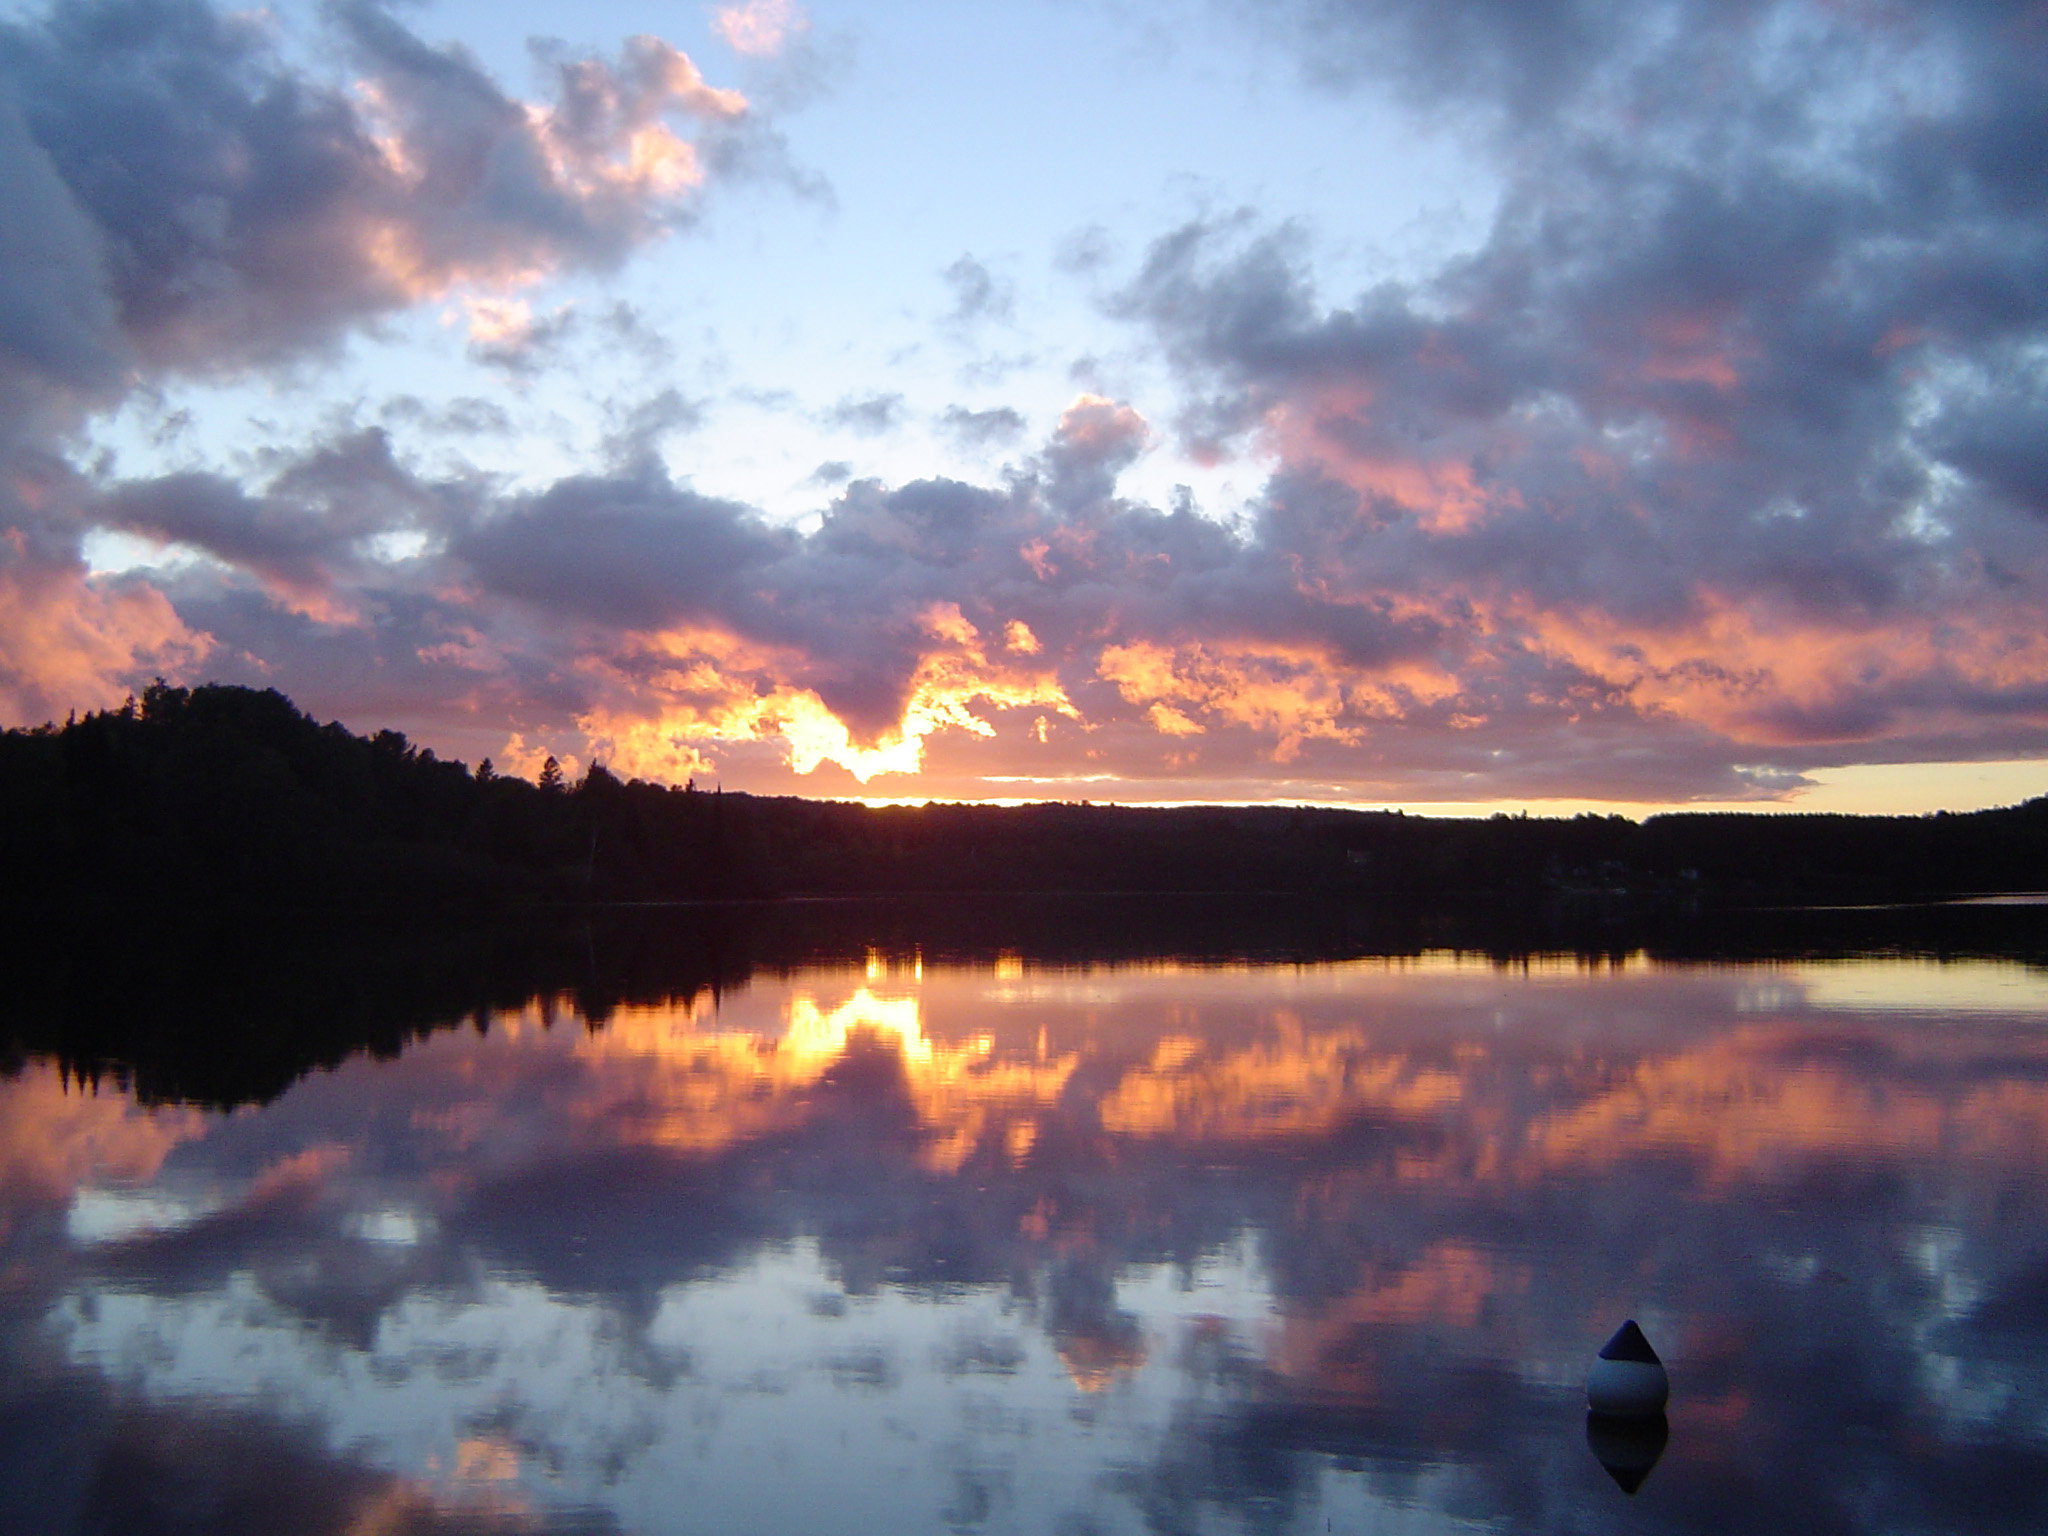 Sunset Behind Forest Hills Overlooking Lake in Algonquin Park, Ontario, Canada